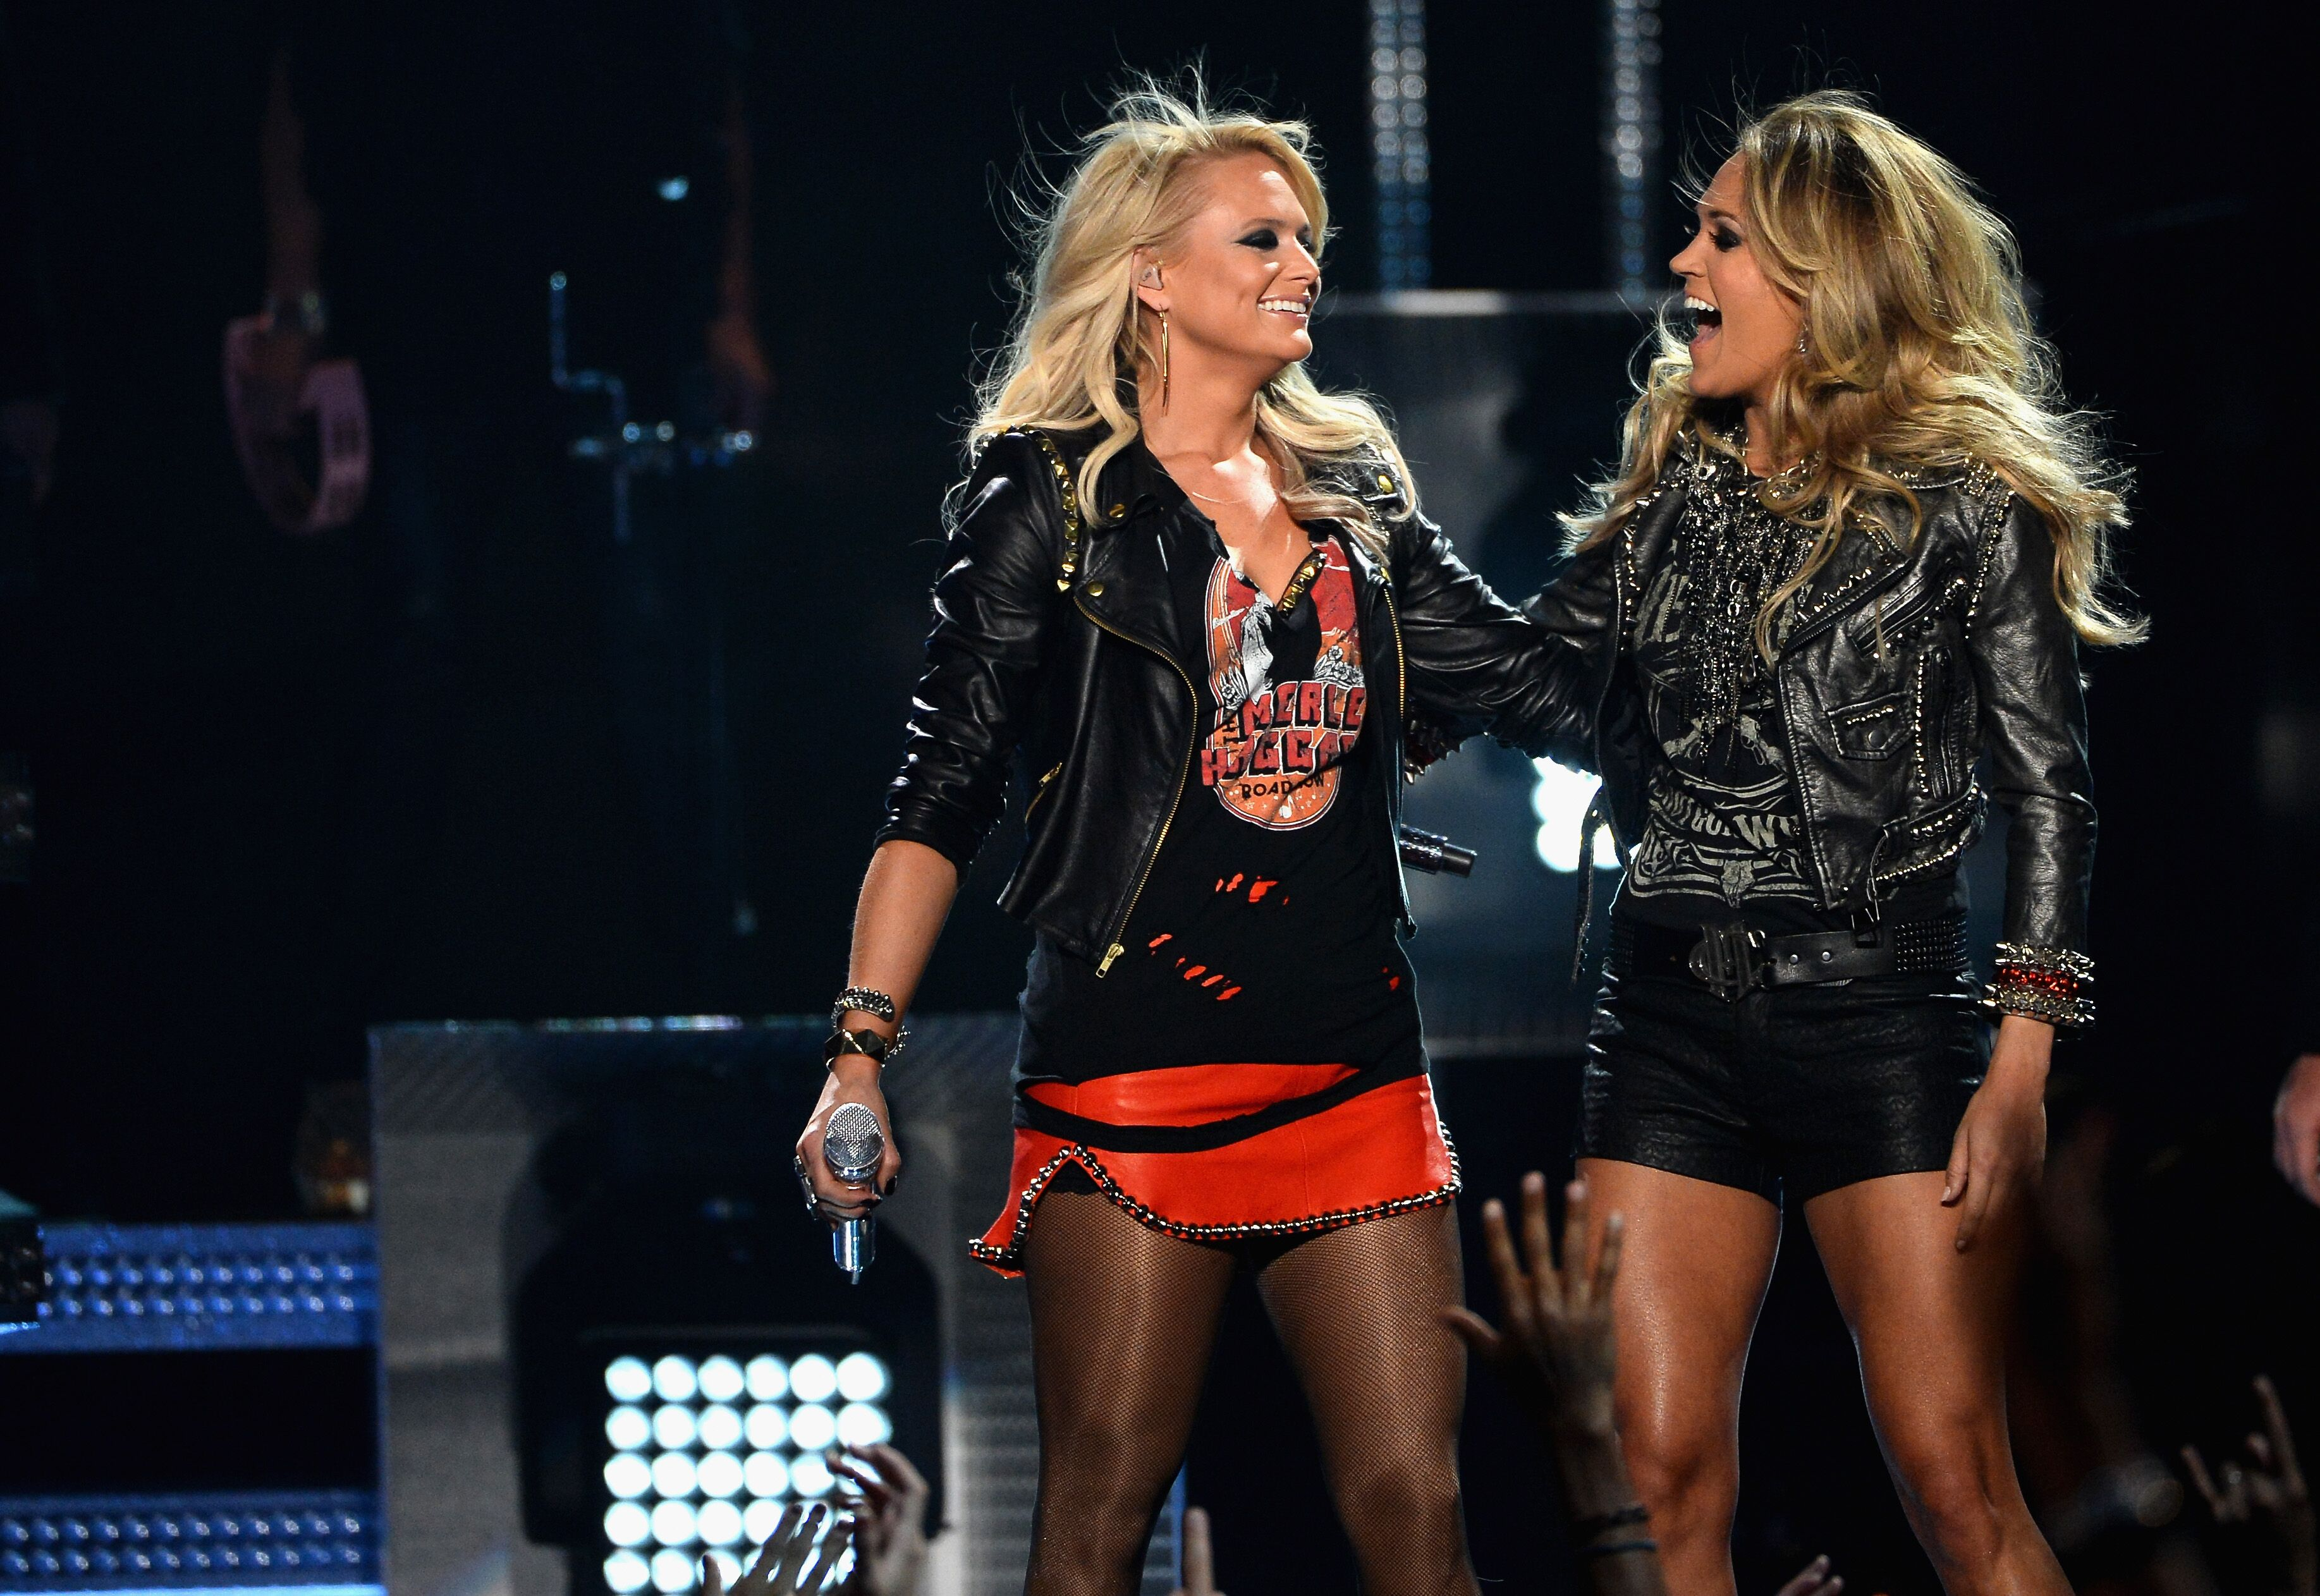 Miranda Lambert and Carrie Underwood perform onstage at the Billboard Music Awards on May 18, 2014, in Las Vegas, Nevada | Photo: Ethan Miller/Getty Images